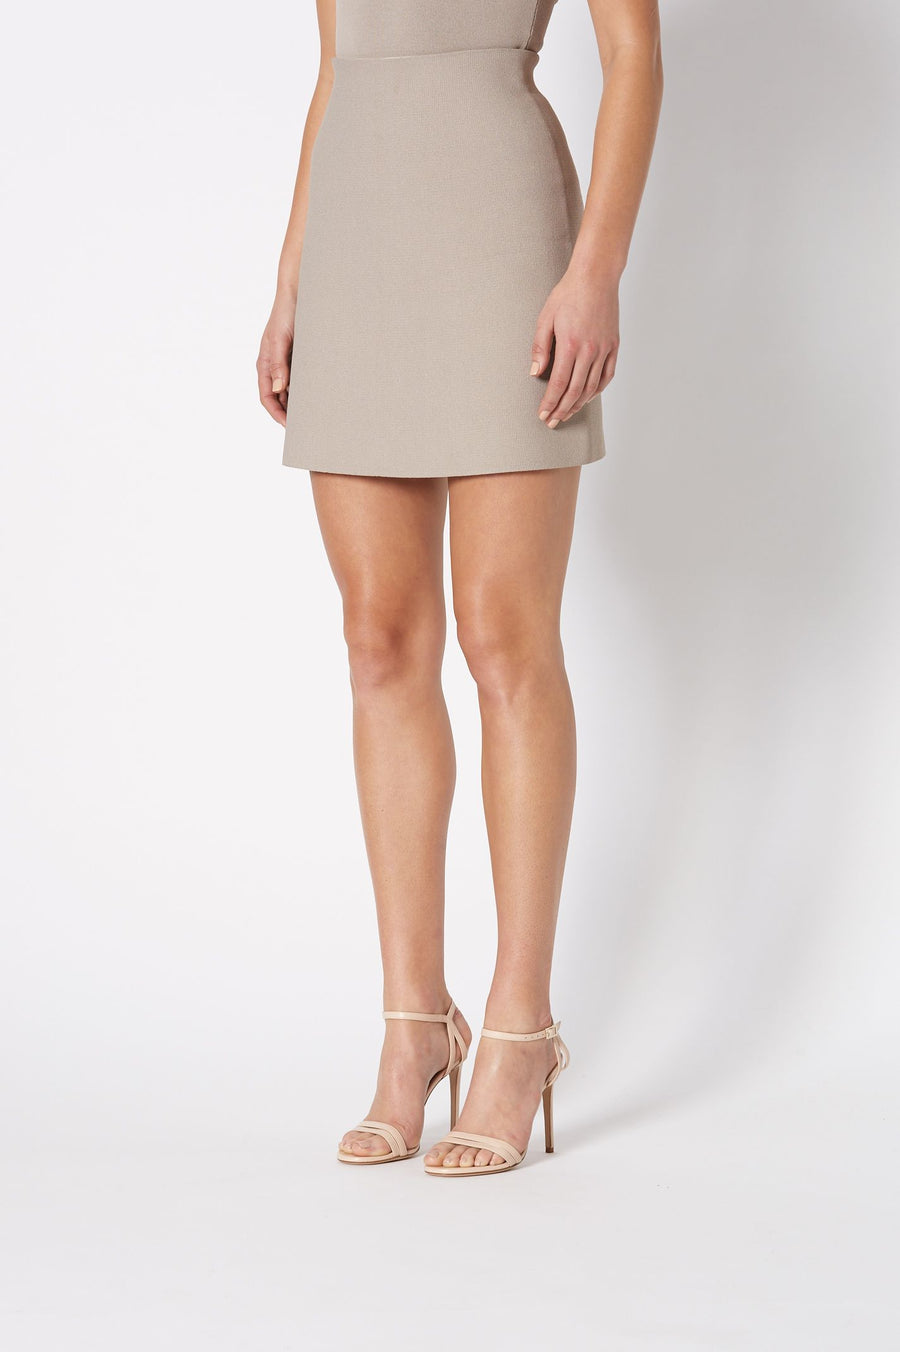 CREPE KNIT MINI SKIRT, high waisted and falls above knee, color clay